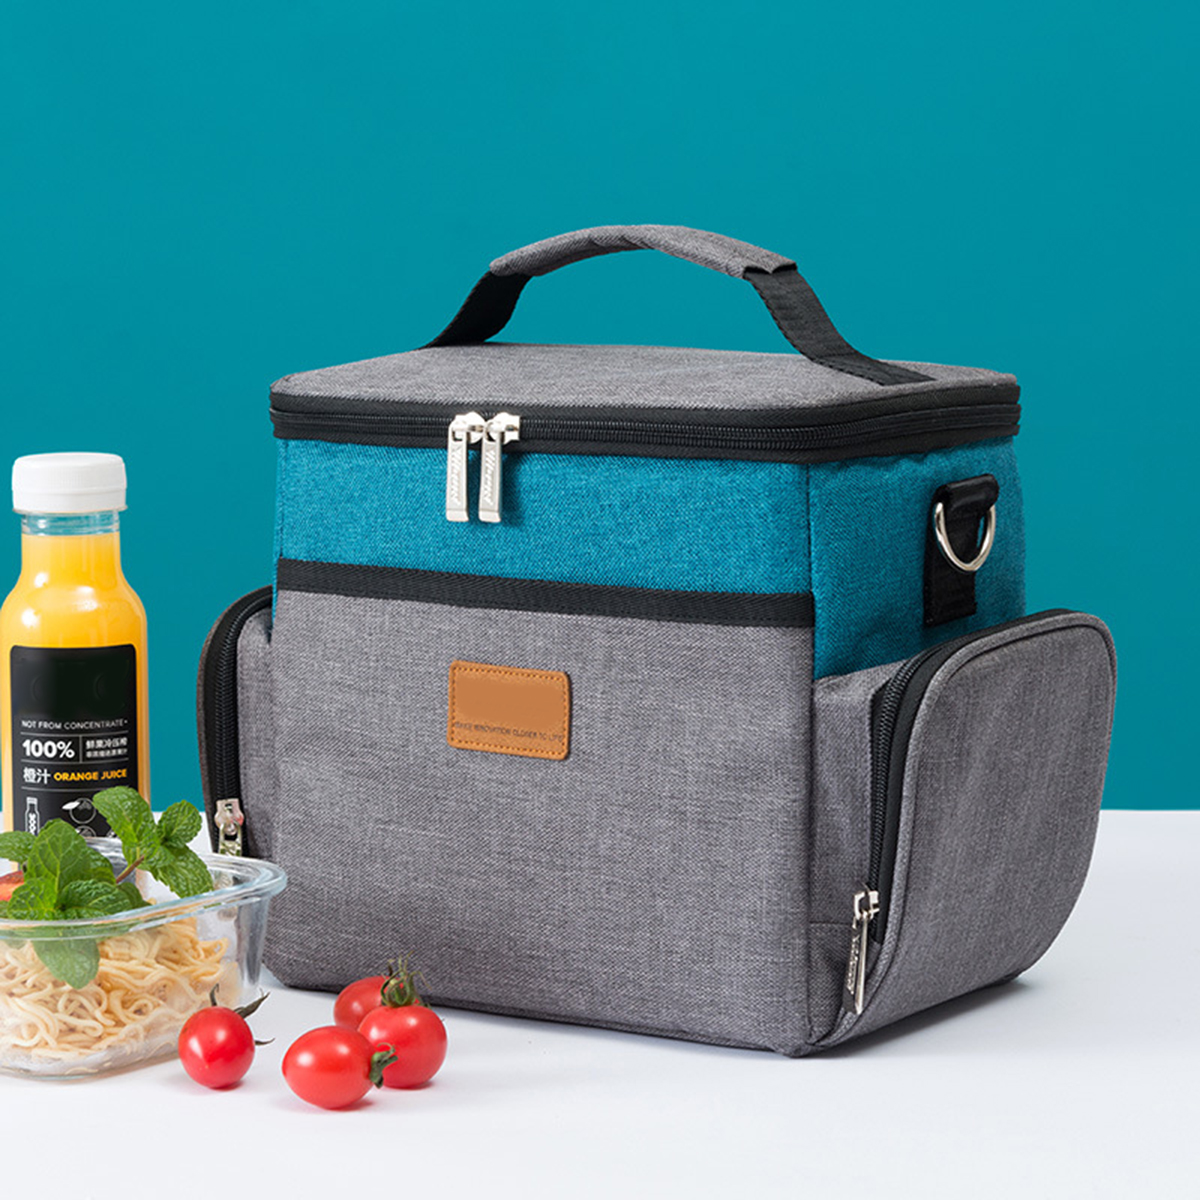 7.5L Outdoor Picnic Insulated Oxford Thermal Lunch Bag Food Cooler Case Tote Camping Hiking